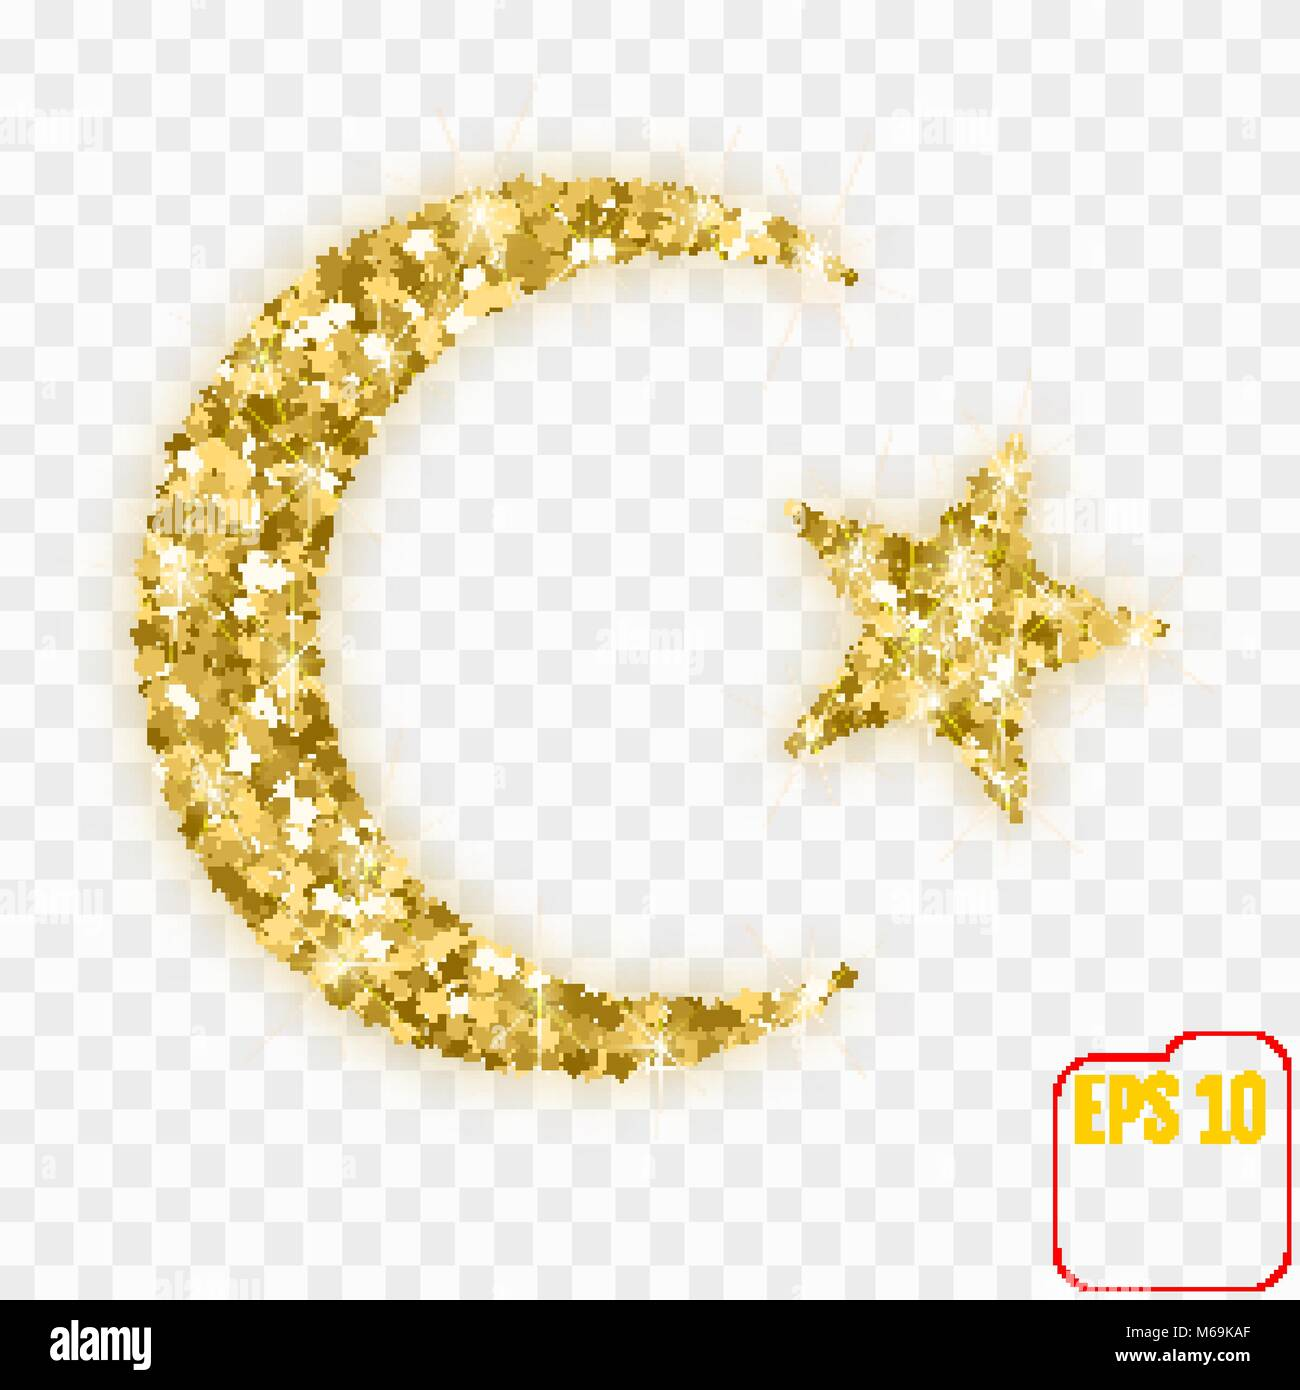 Star and crescent moon islam symbol gold stars confetti concept star and crescent moon islam symbol gold stars confetti concept vector illustration for biocorpaavc Gallery